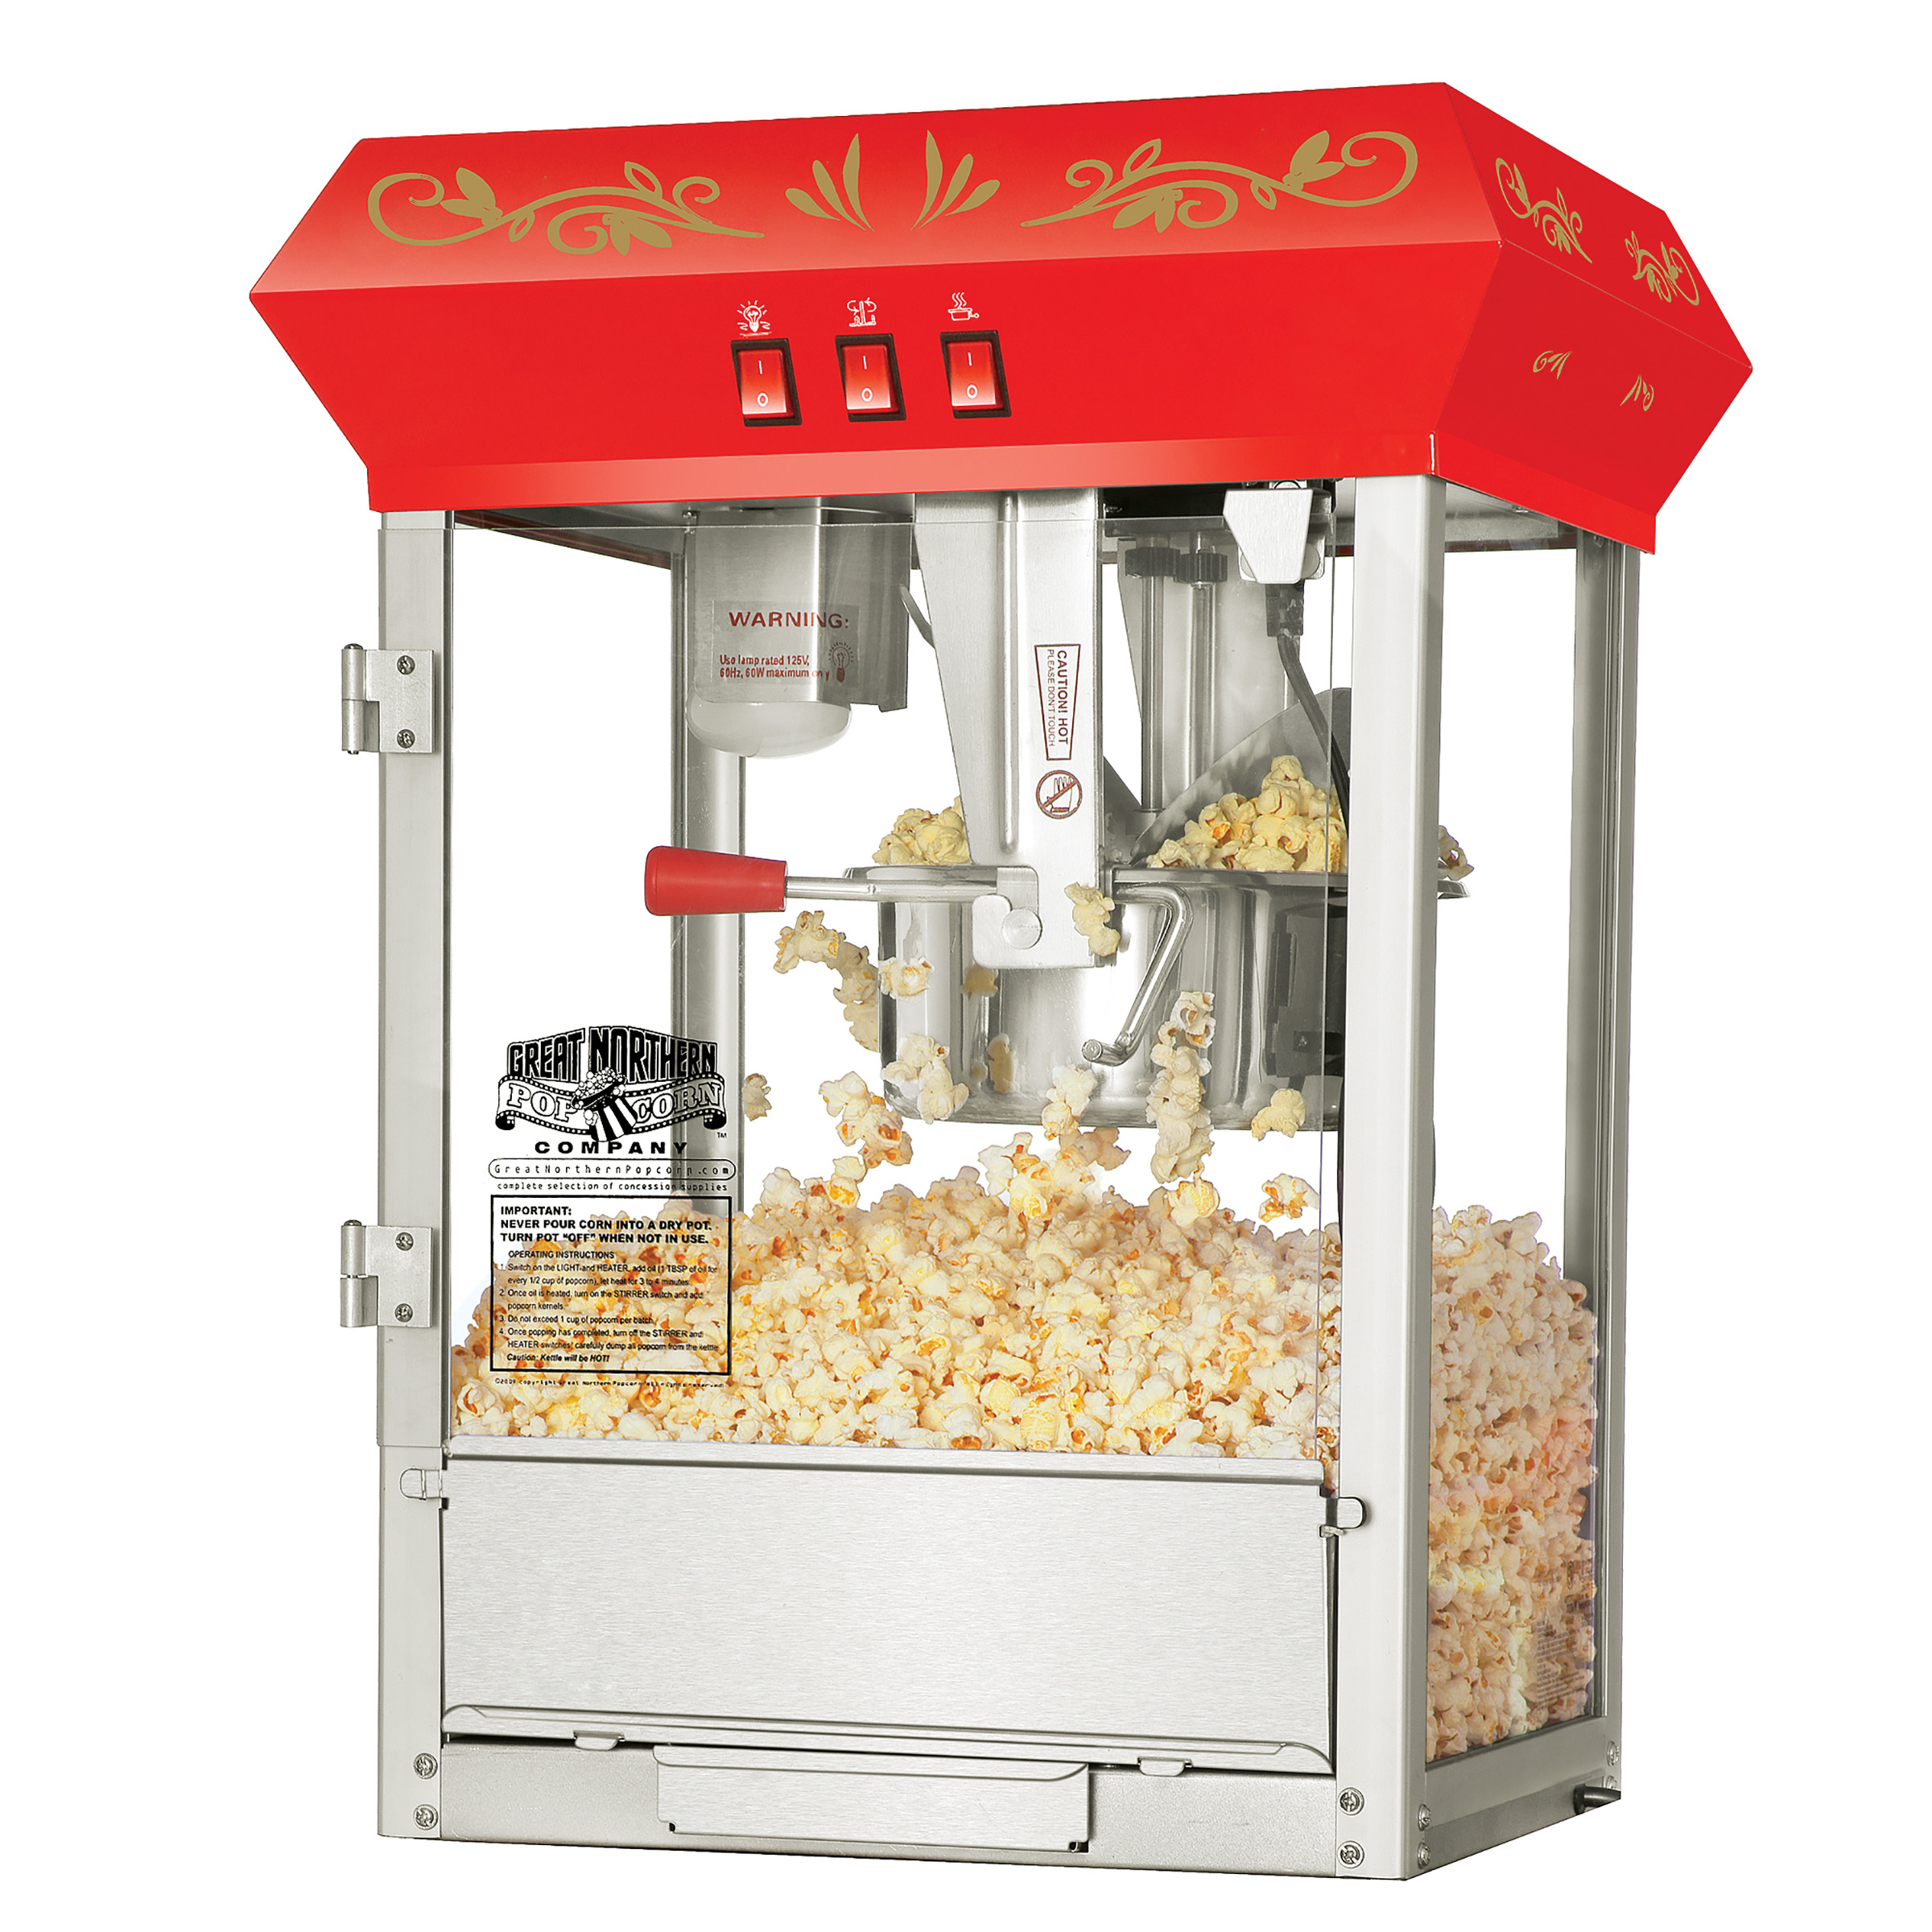 Foundation Popcorn Popper Machine, 8 Ounce by Great Northern Popcorn